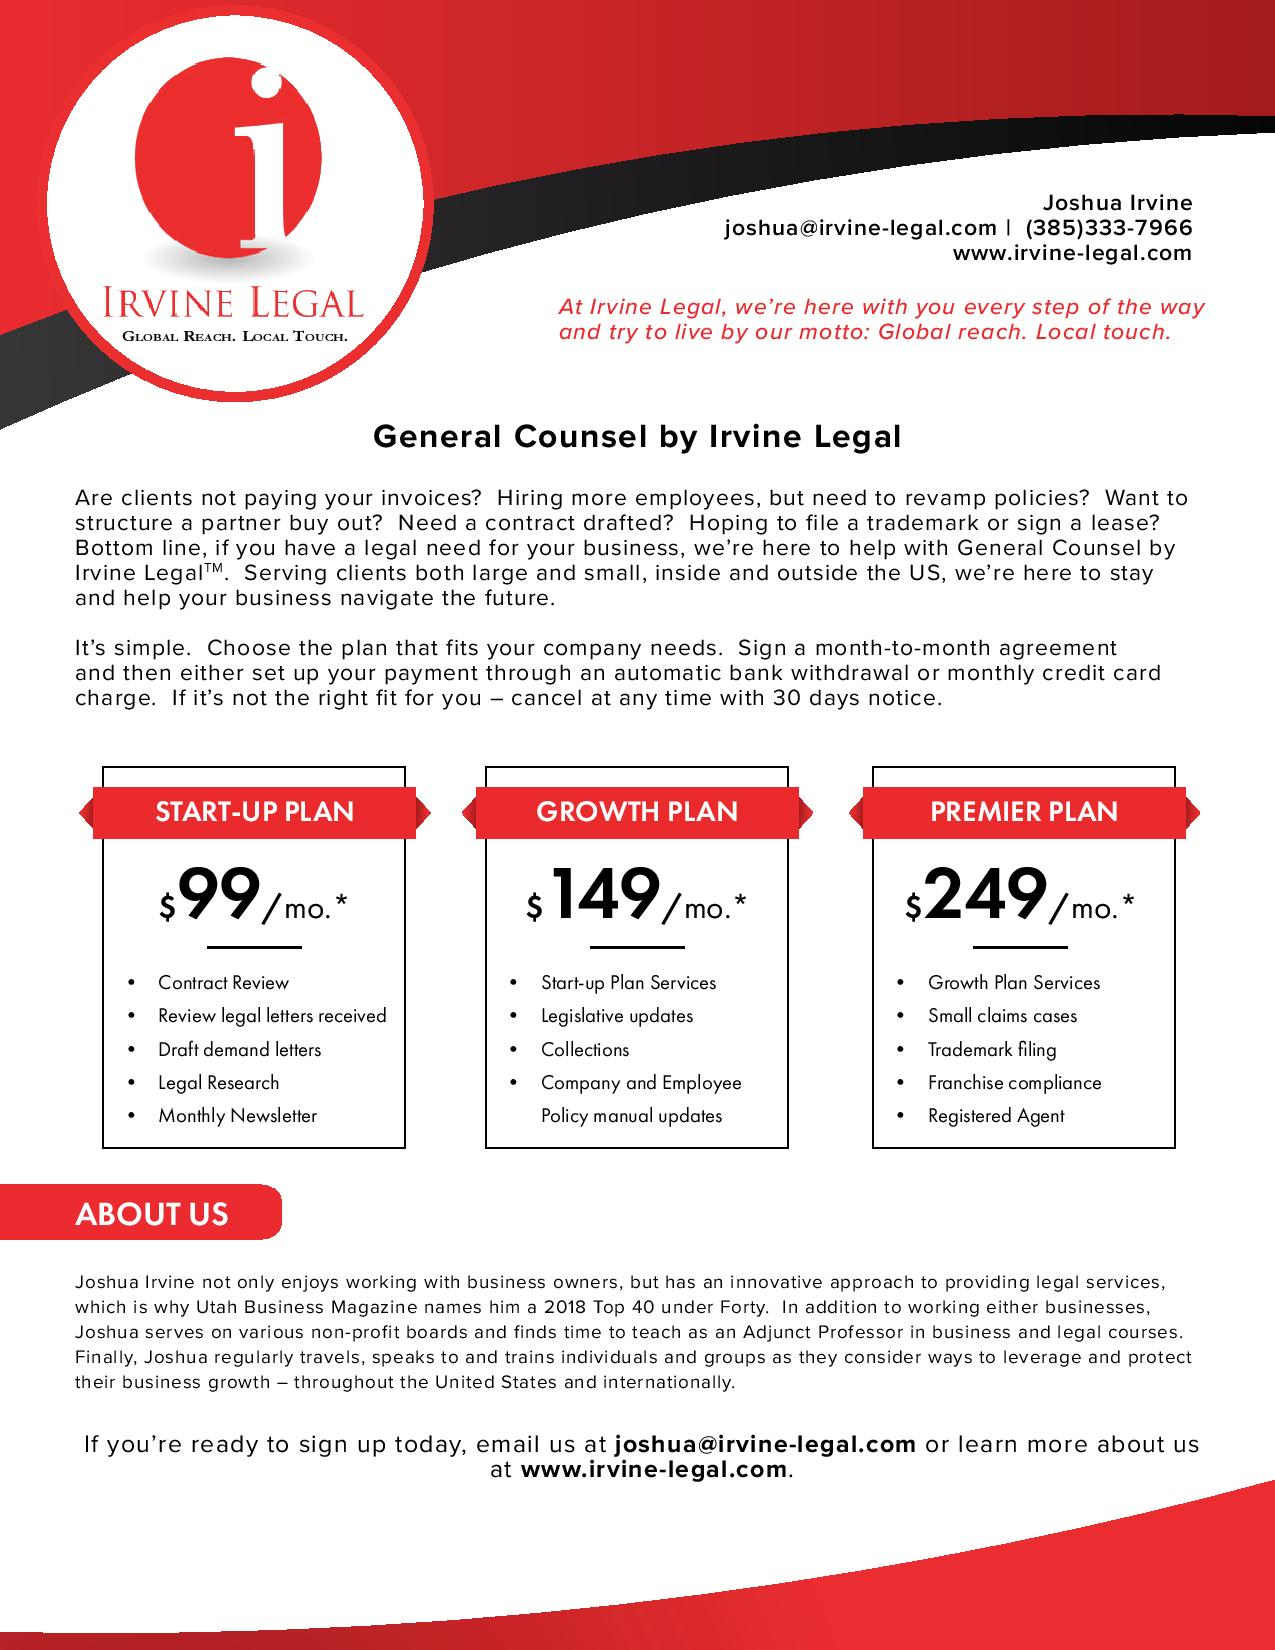 General Counsel by Irvine Legal-page-001.jpg